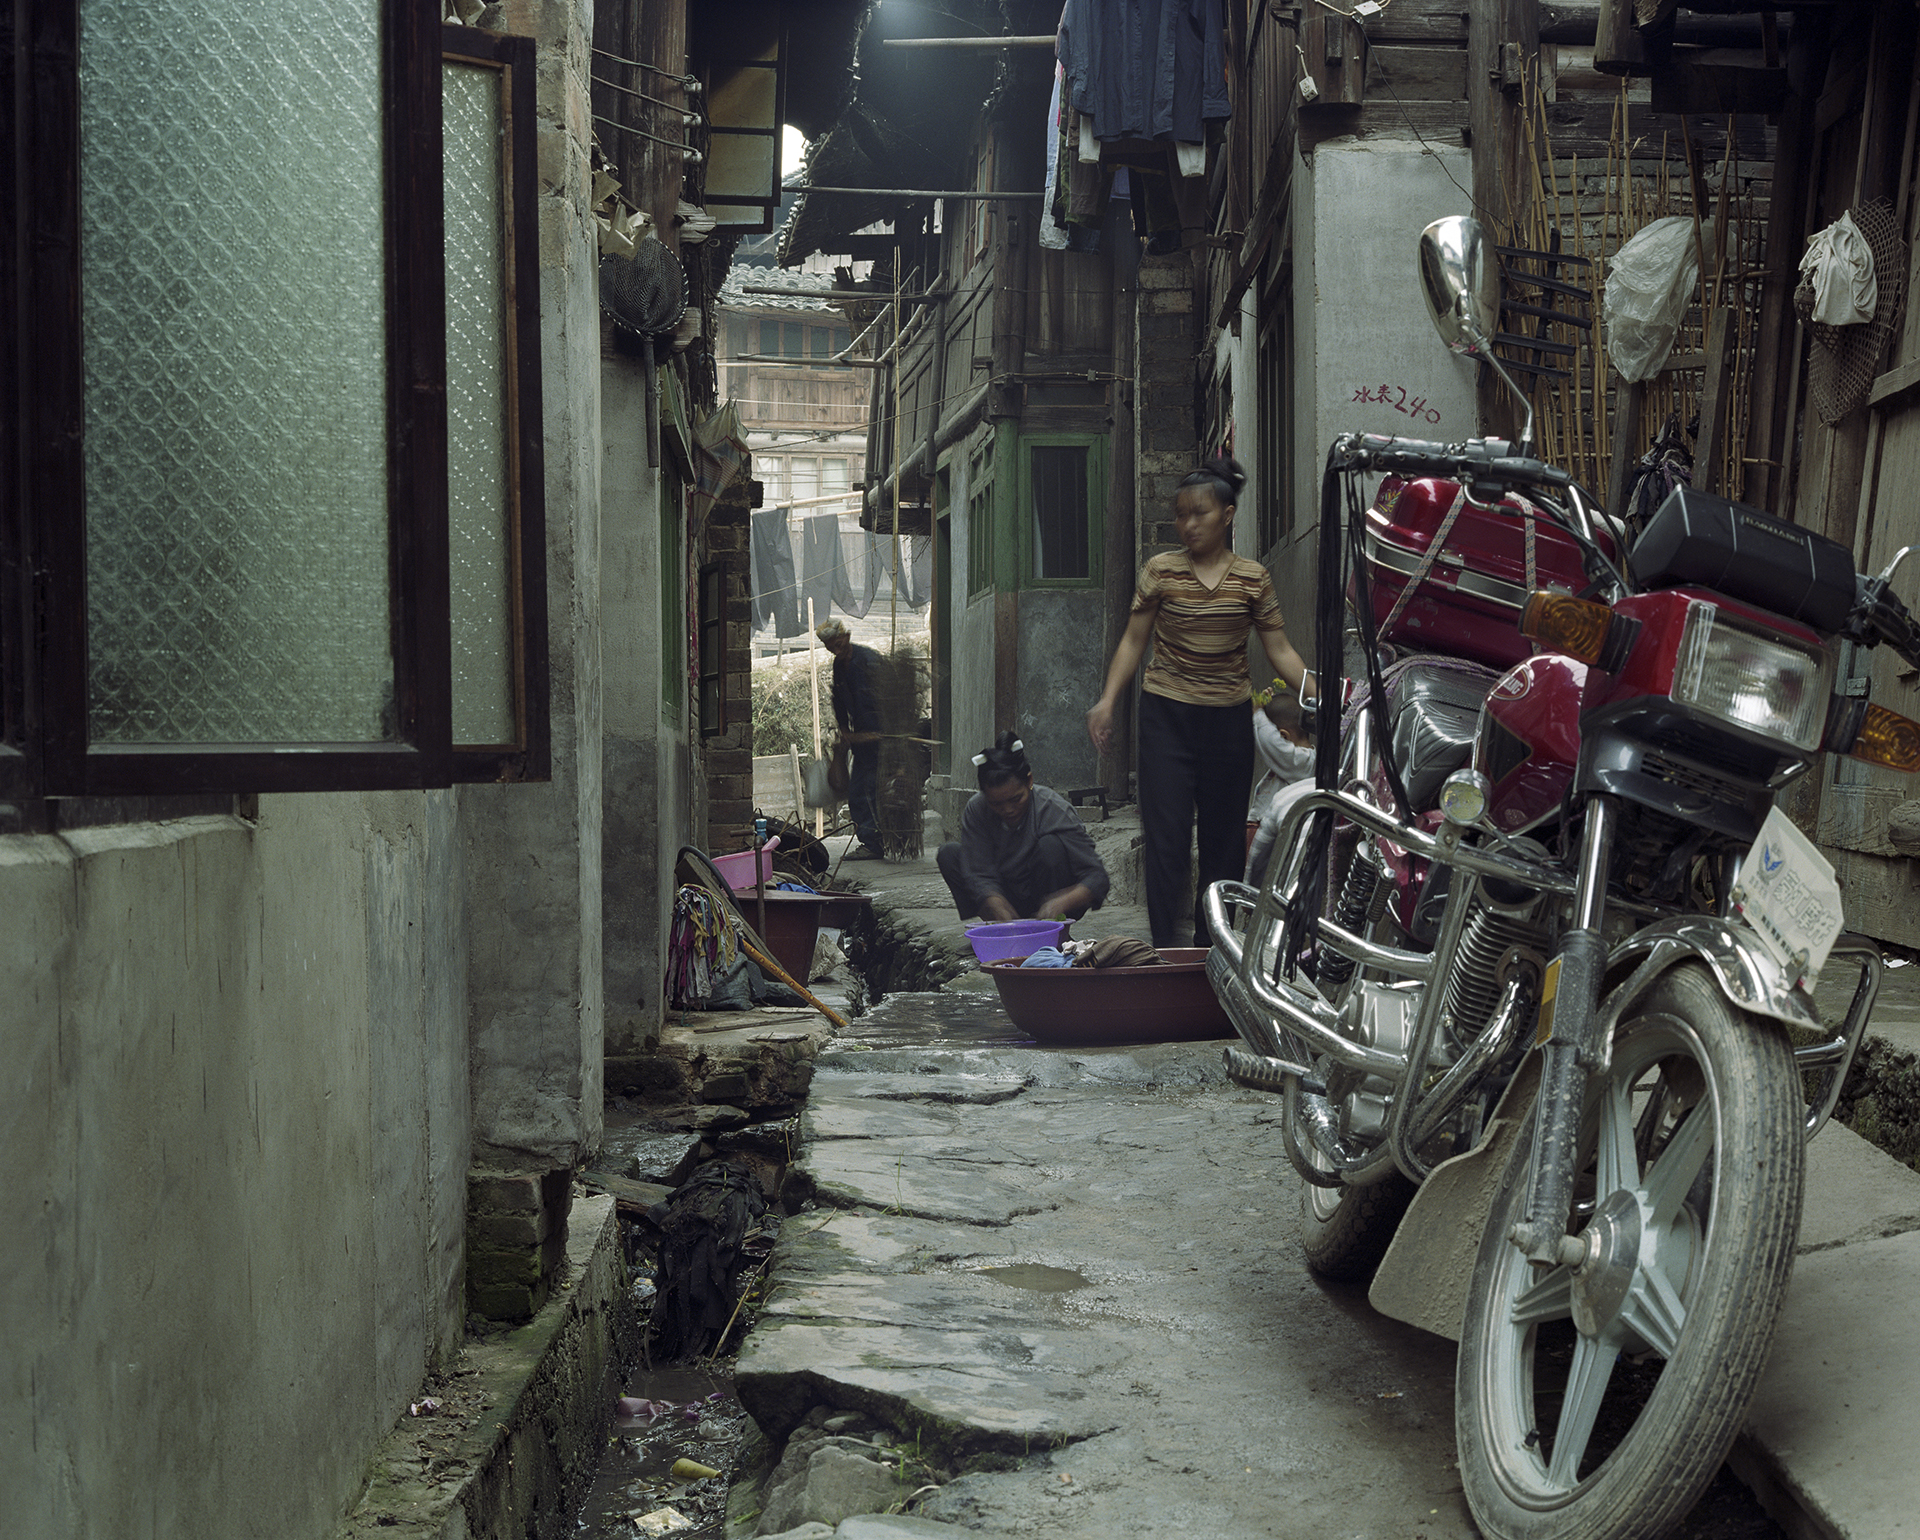 Typical Zhaoxing alley with little space for motorbikes.